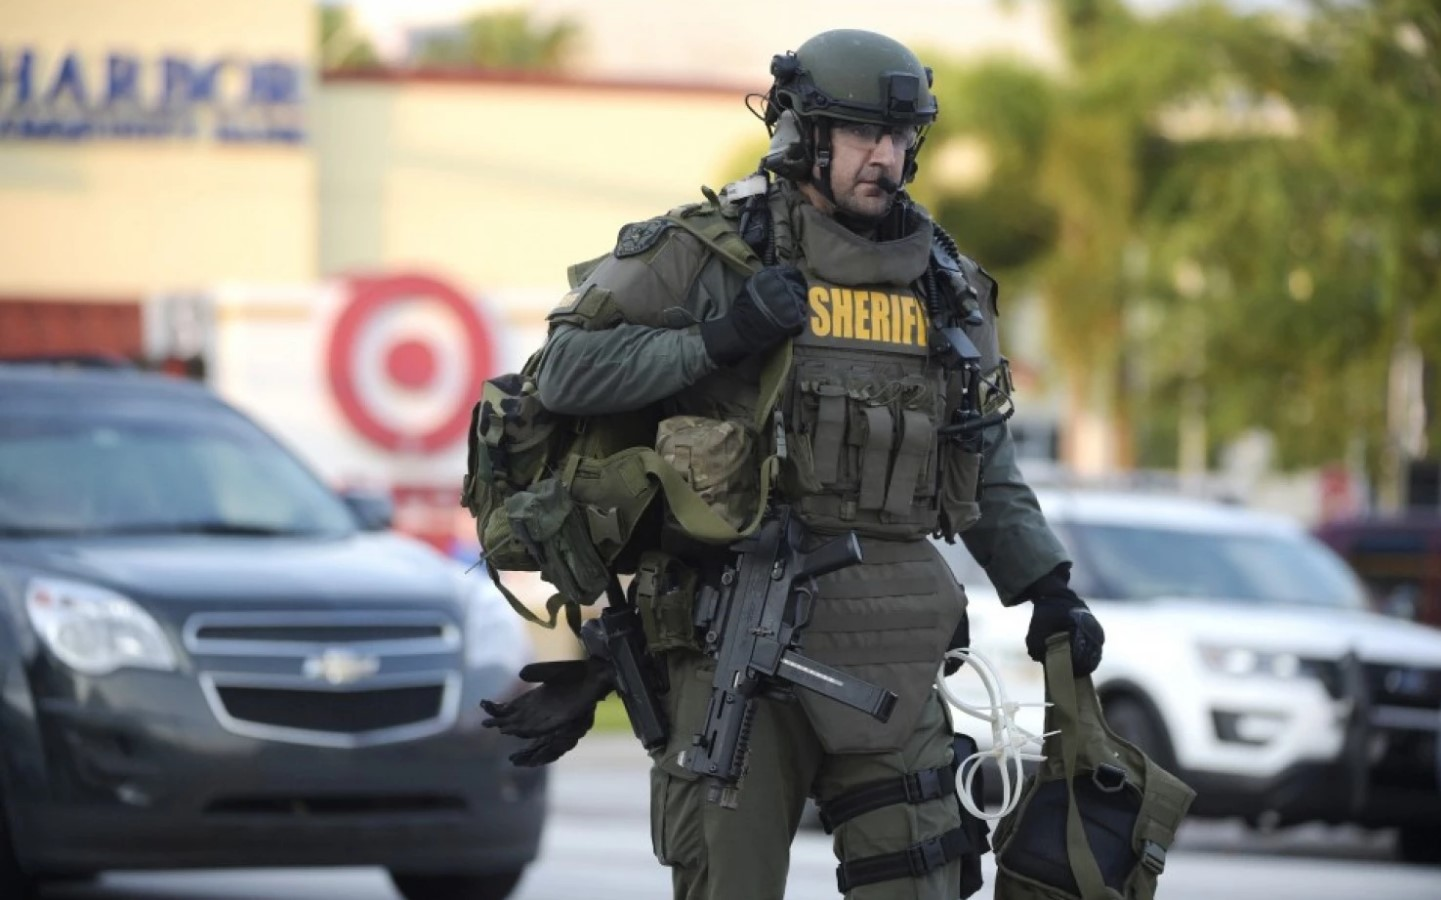 An Orange County Sheriff's Department SWAT member arrives to the scene of a fatal shooting at Pulse nightclub in Orlando on June 12. (Phelan M. Ebenhack/AP)